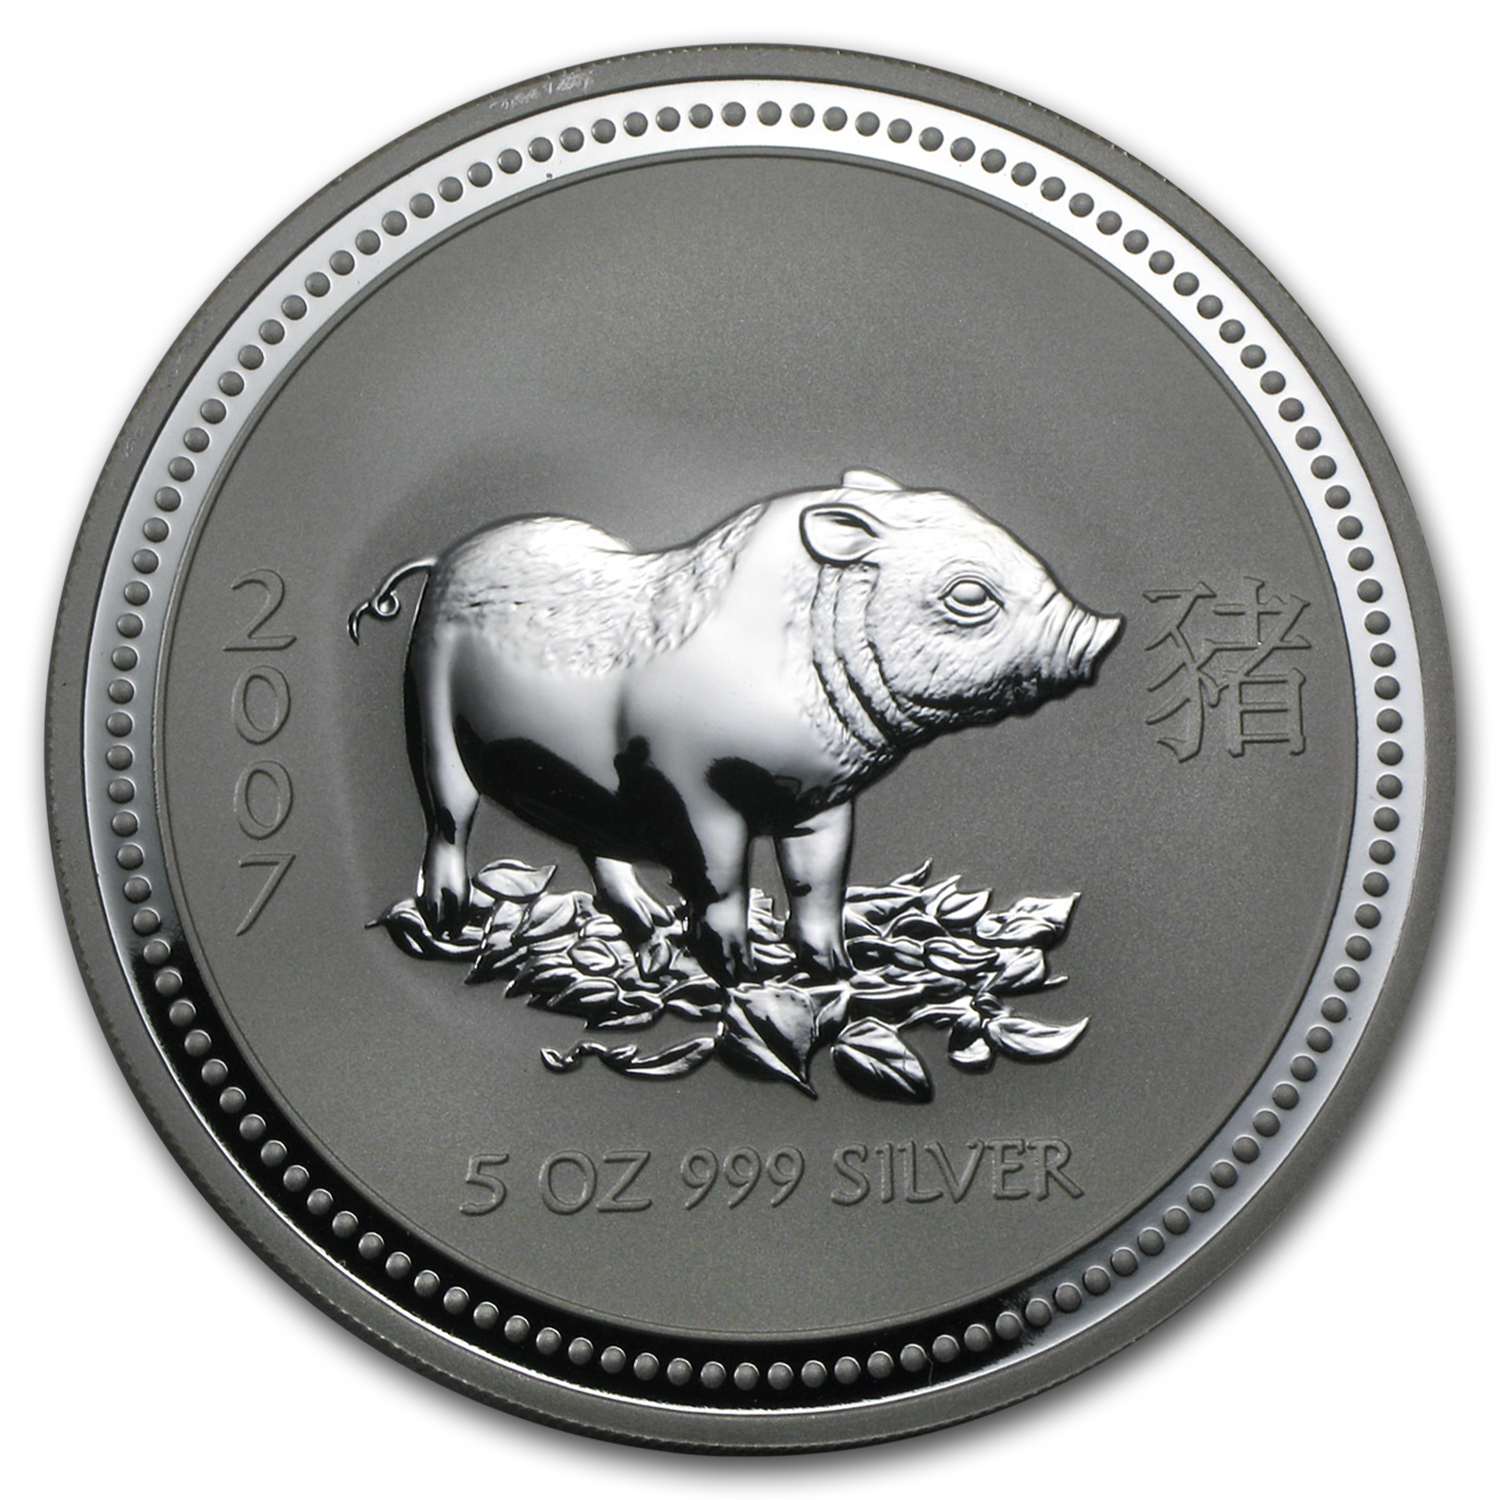 2007 5 oz Silver Australian Year of the Pig BU